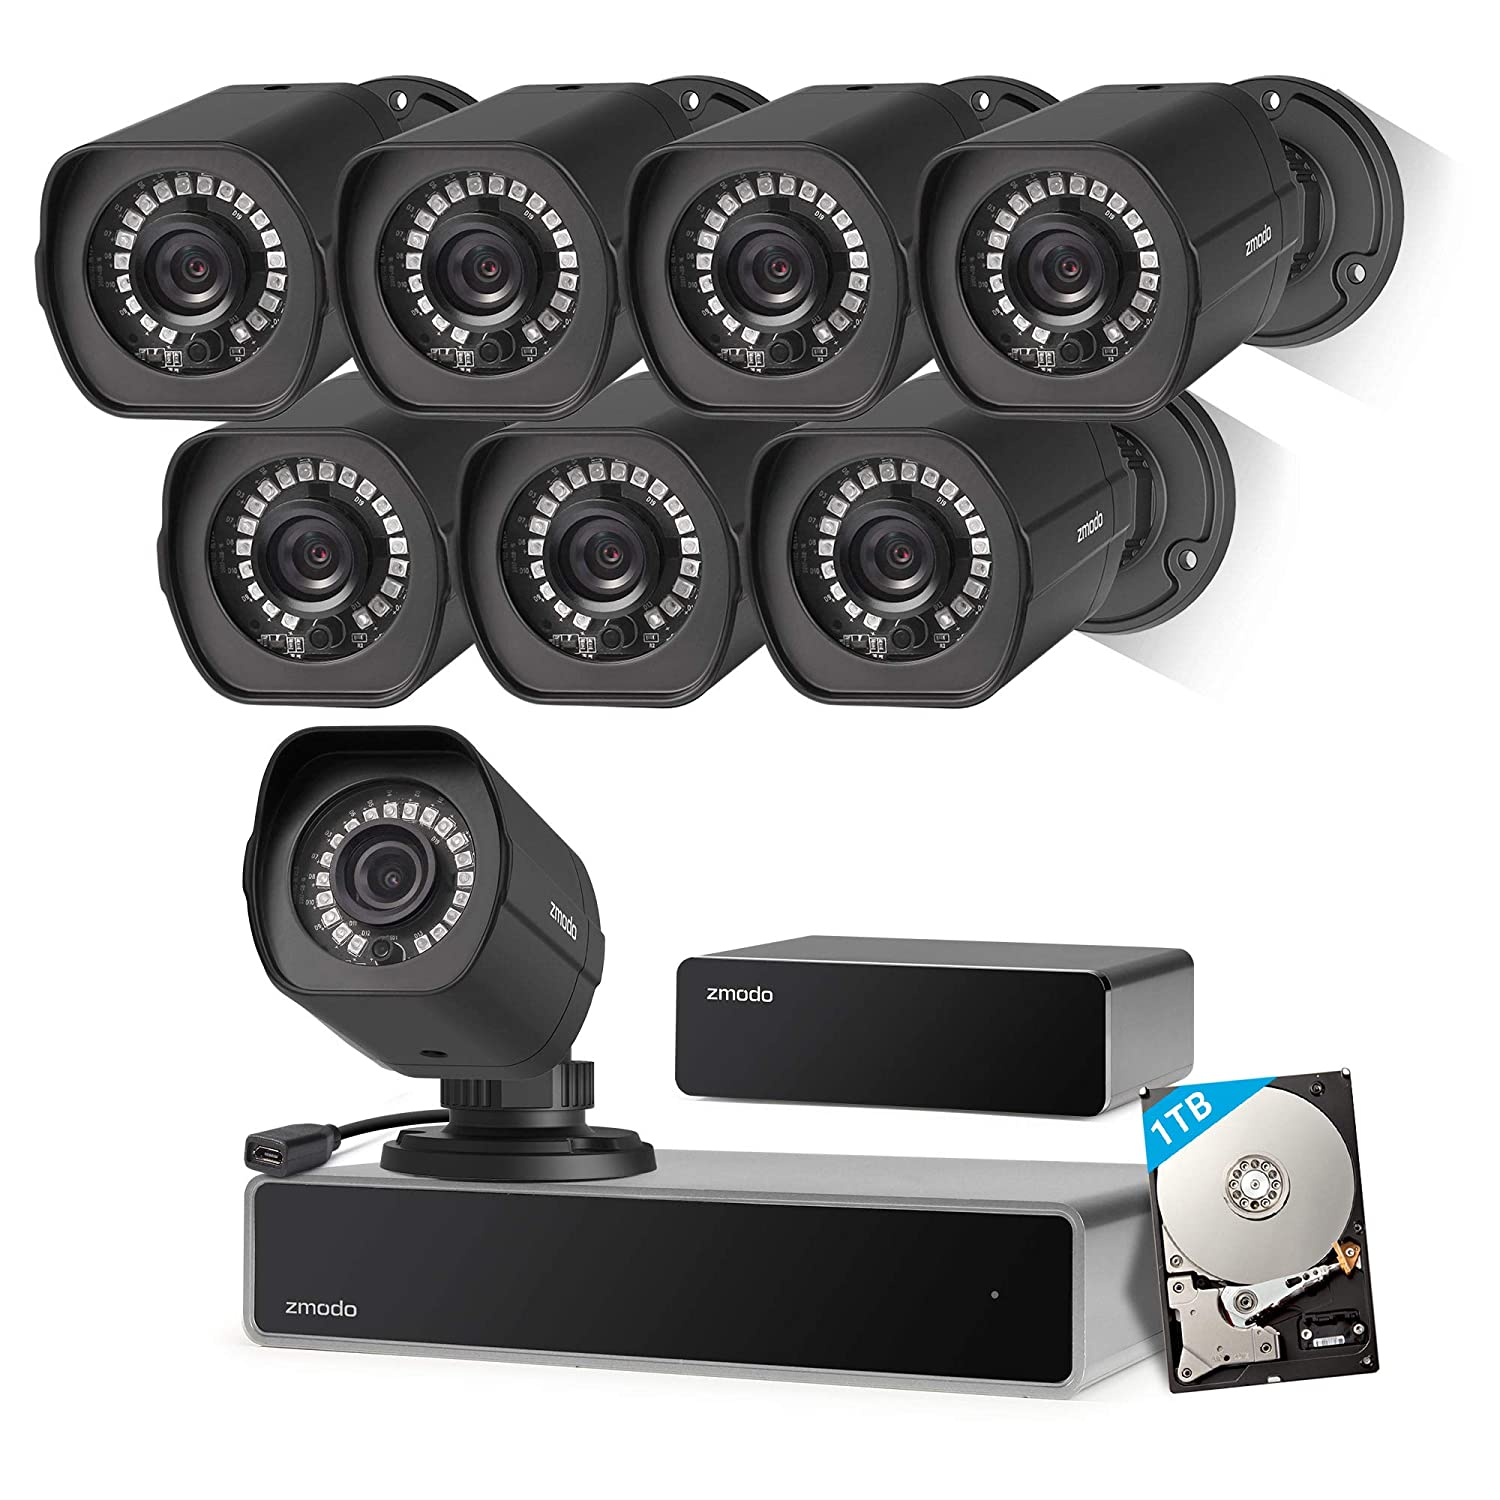 Zmodo Full HD 1080p Simplified PoE Security Camera System w/Repeater, 8 x 2.0 Megapixel IP Outdoor Surveillance Camera, 8CH HDMI NVR and 1TB Hard Drive